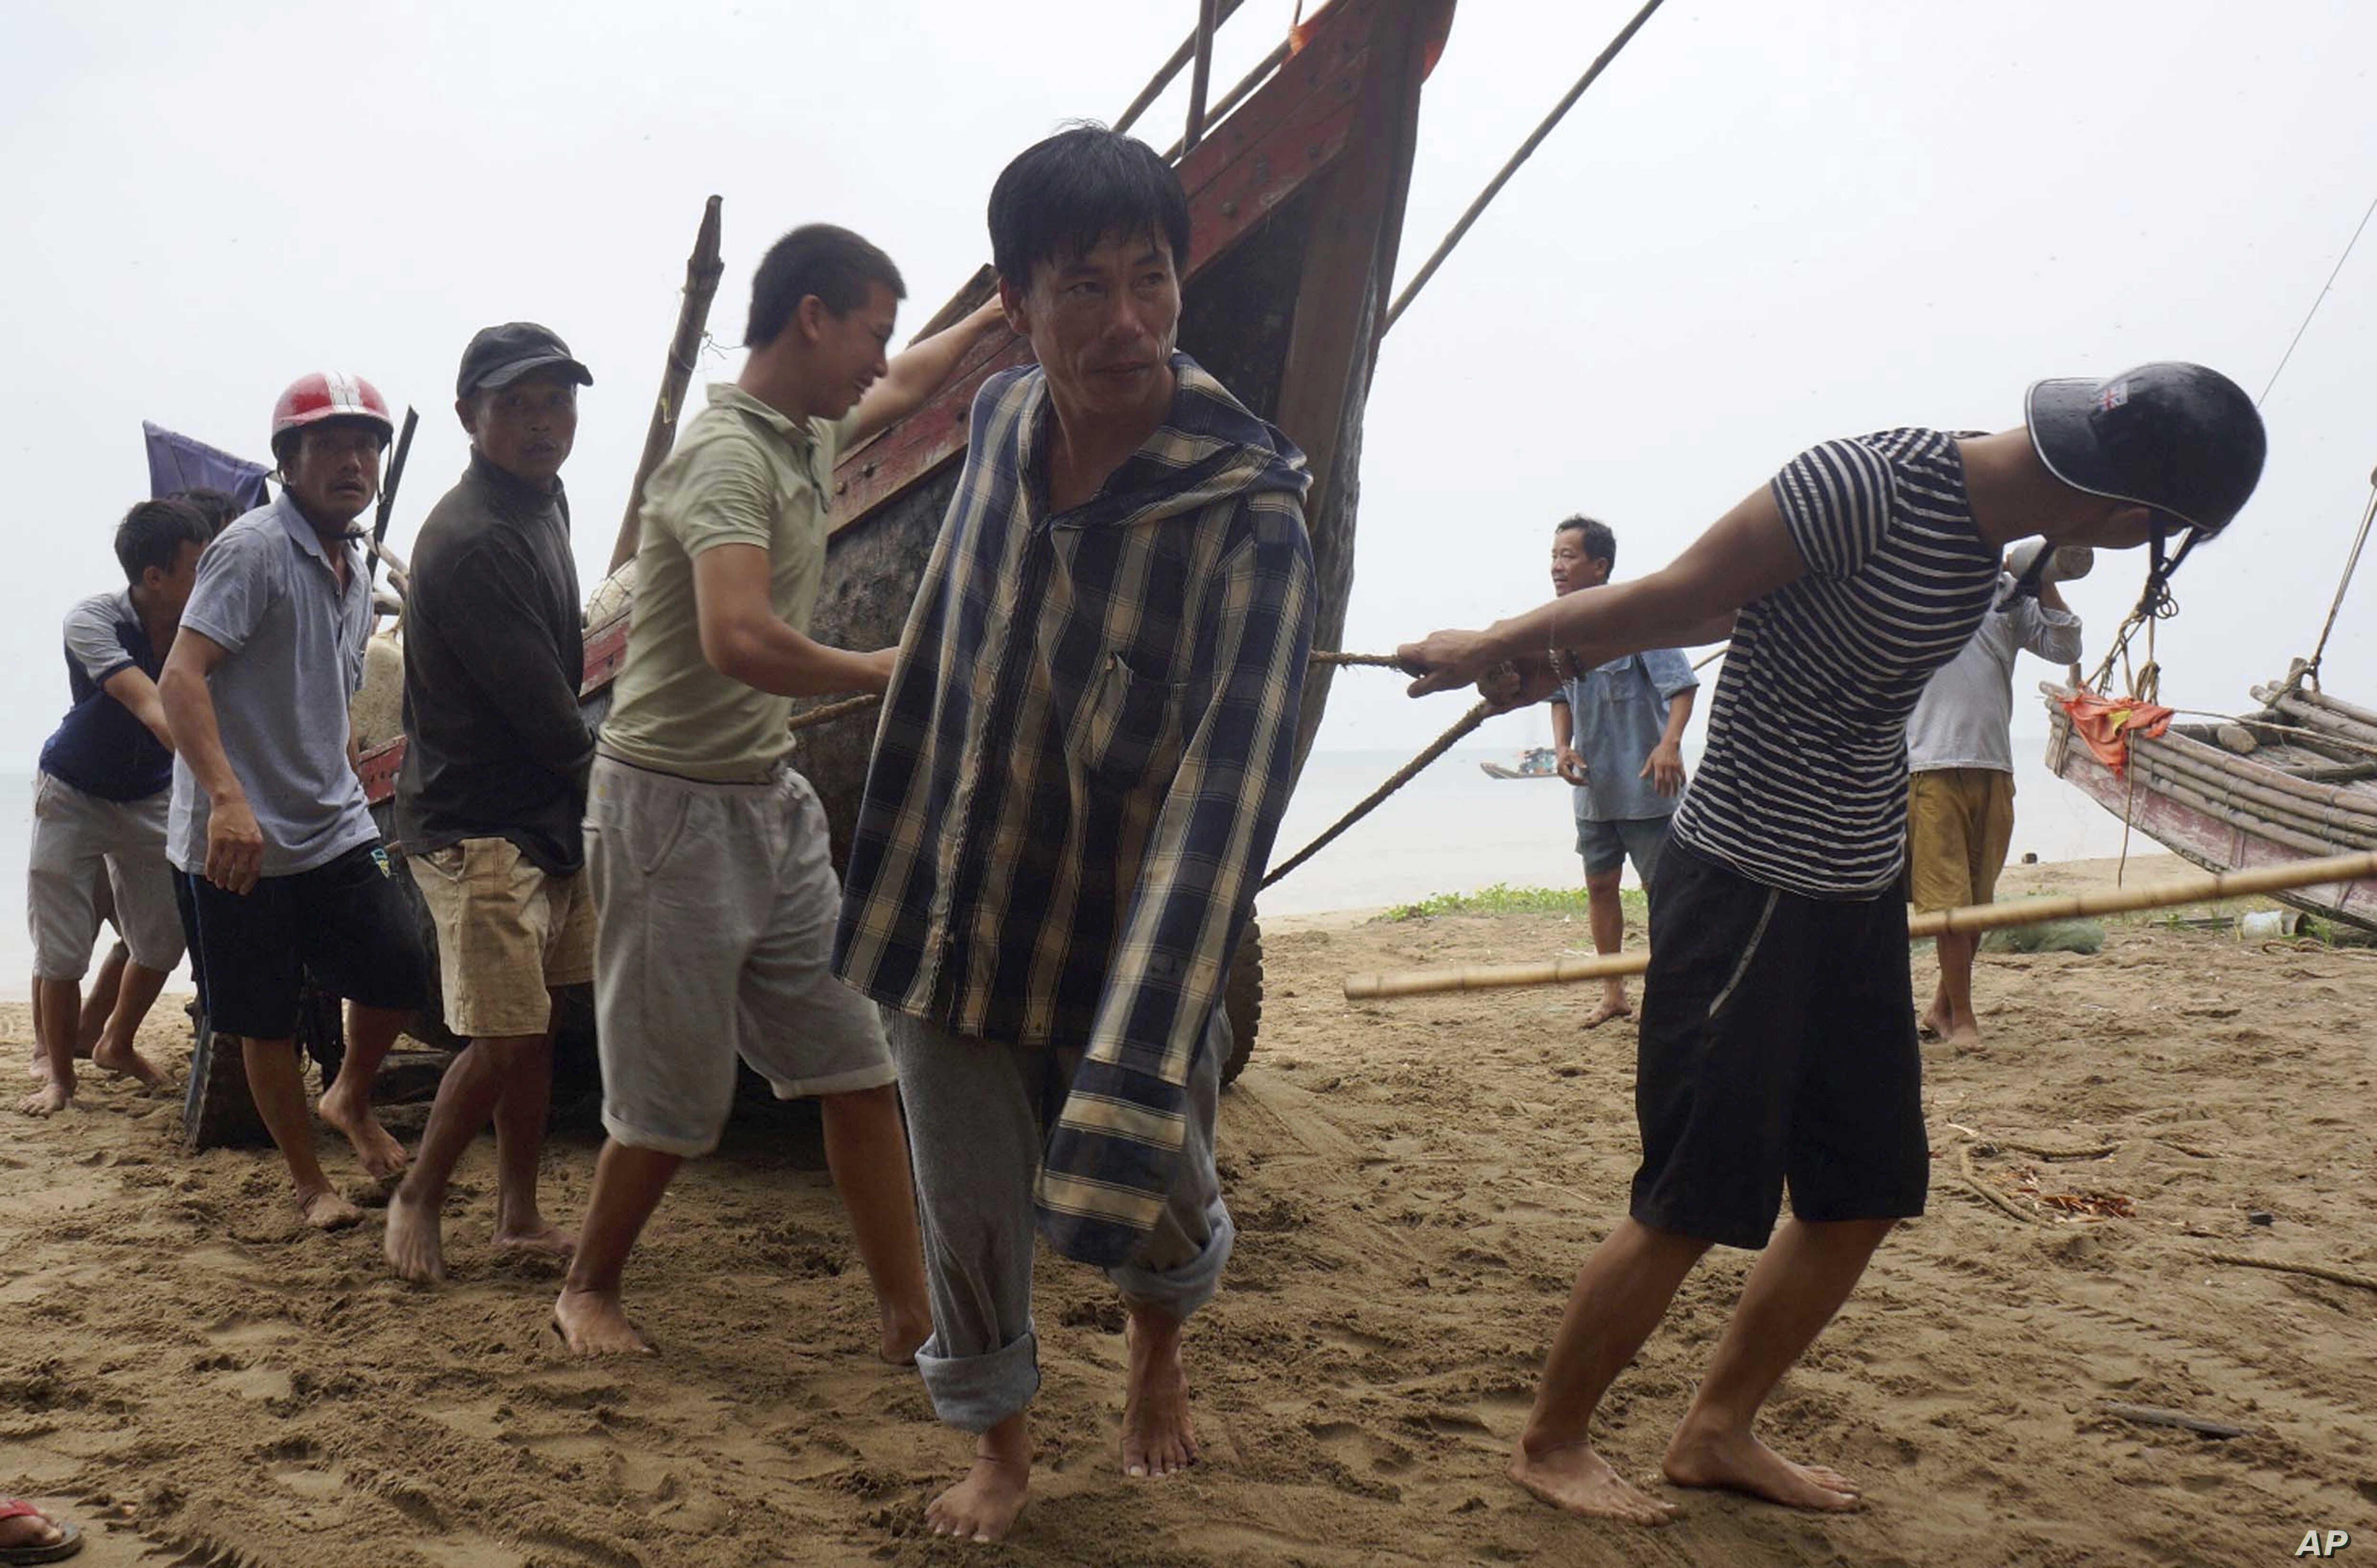 Vietnamese villagers move a fishing boat on shore in northern Thanh Hoa province, Vietnam, Sept. 14, 2017. Vietnam  braced Thursday for Typhoon Doksuri, which was expected to be the most powerful tropical cyclone to hit the Southeast Asian country in...